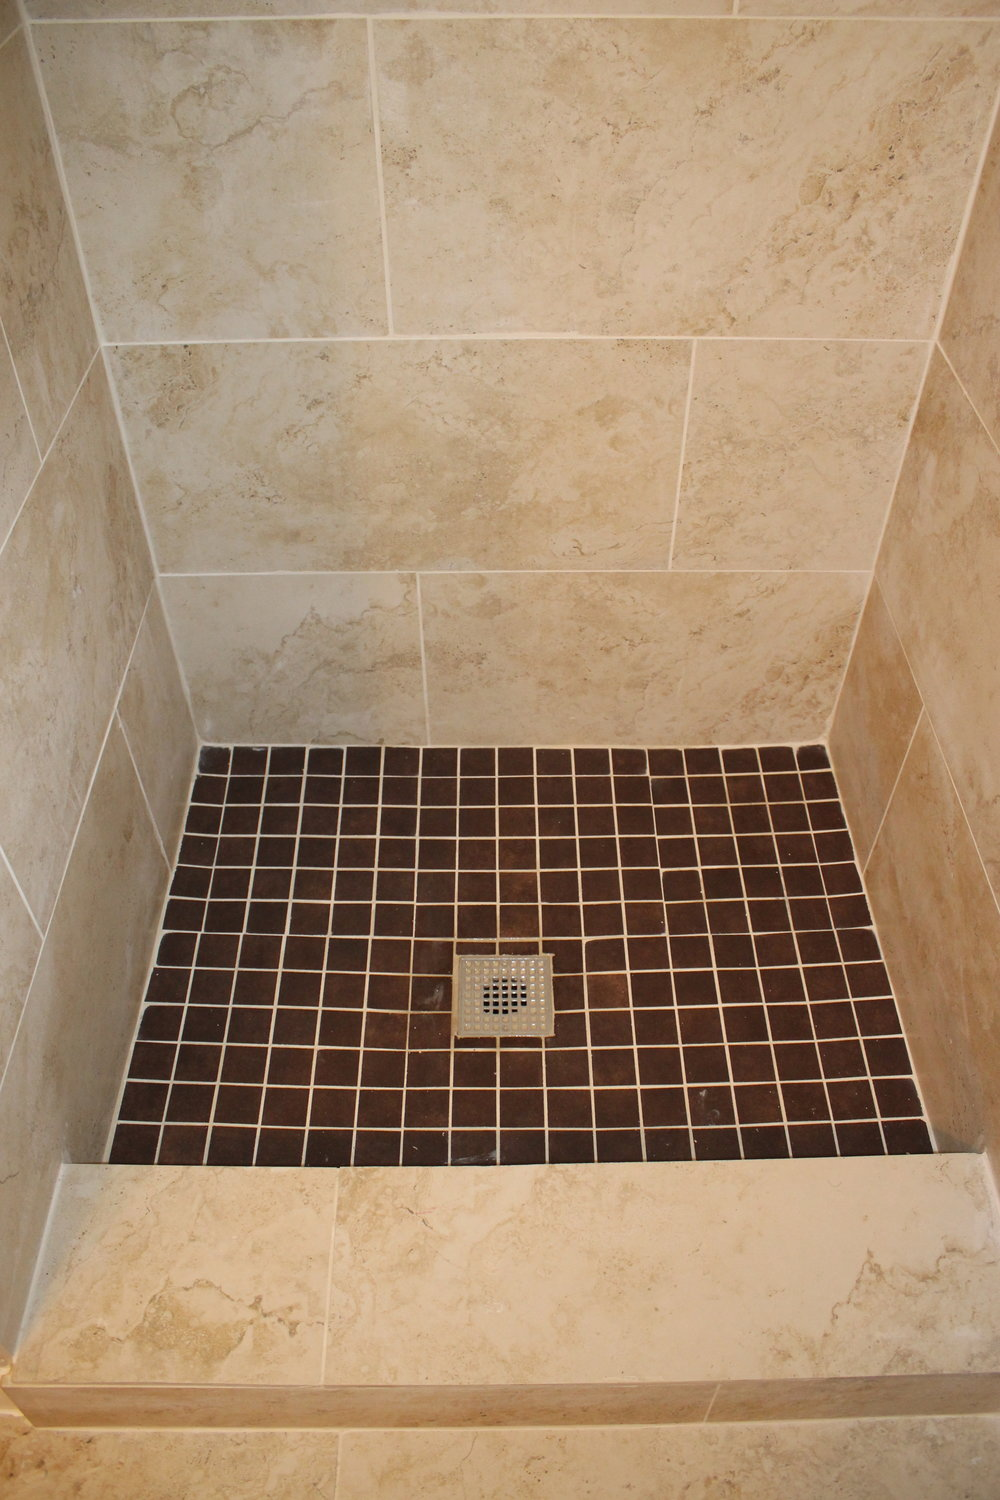 After - added a pop of chocolate brown to the shower floor...why the heck not?